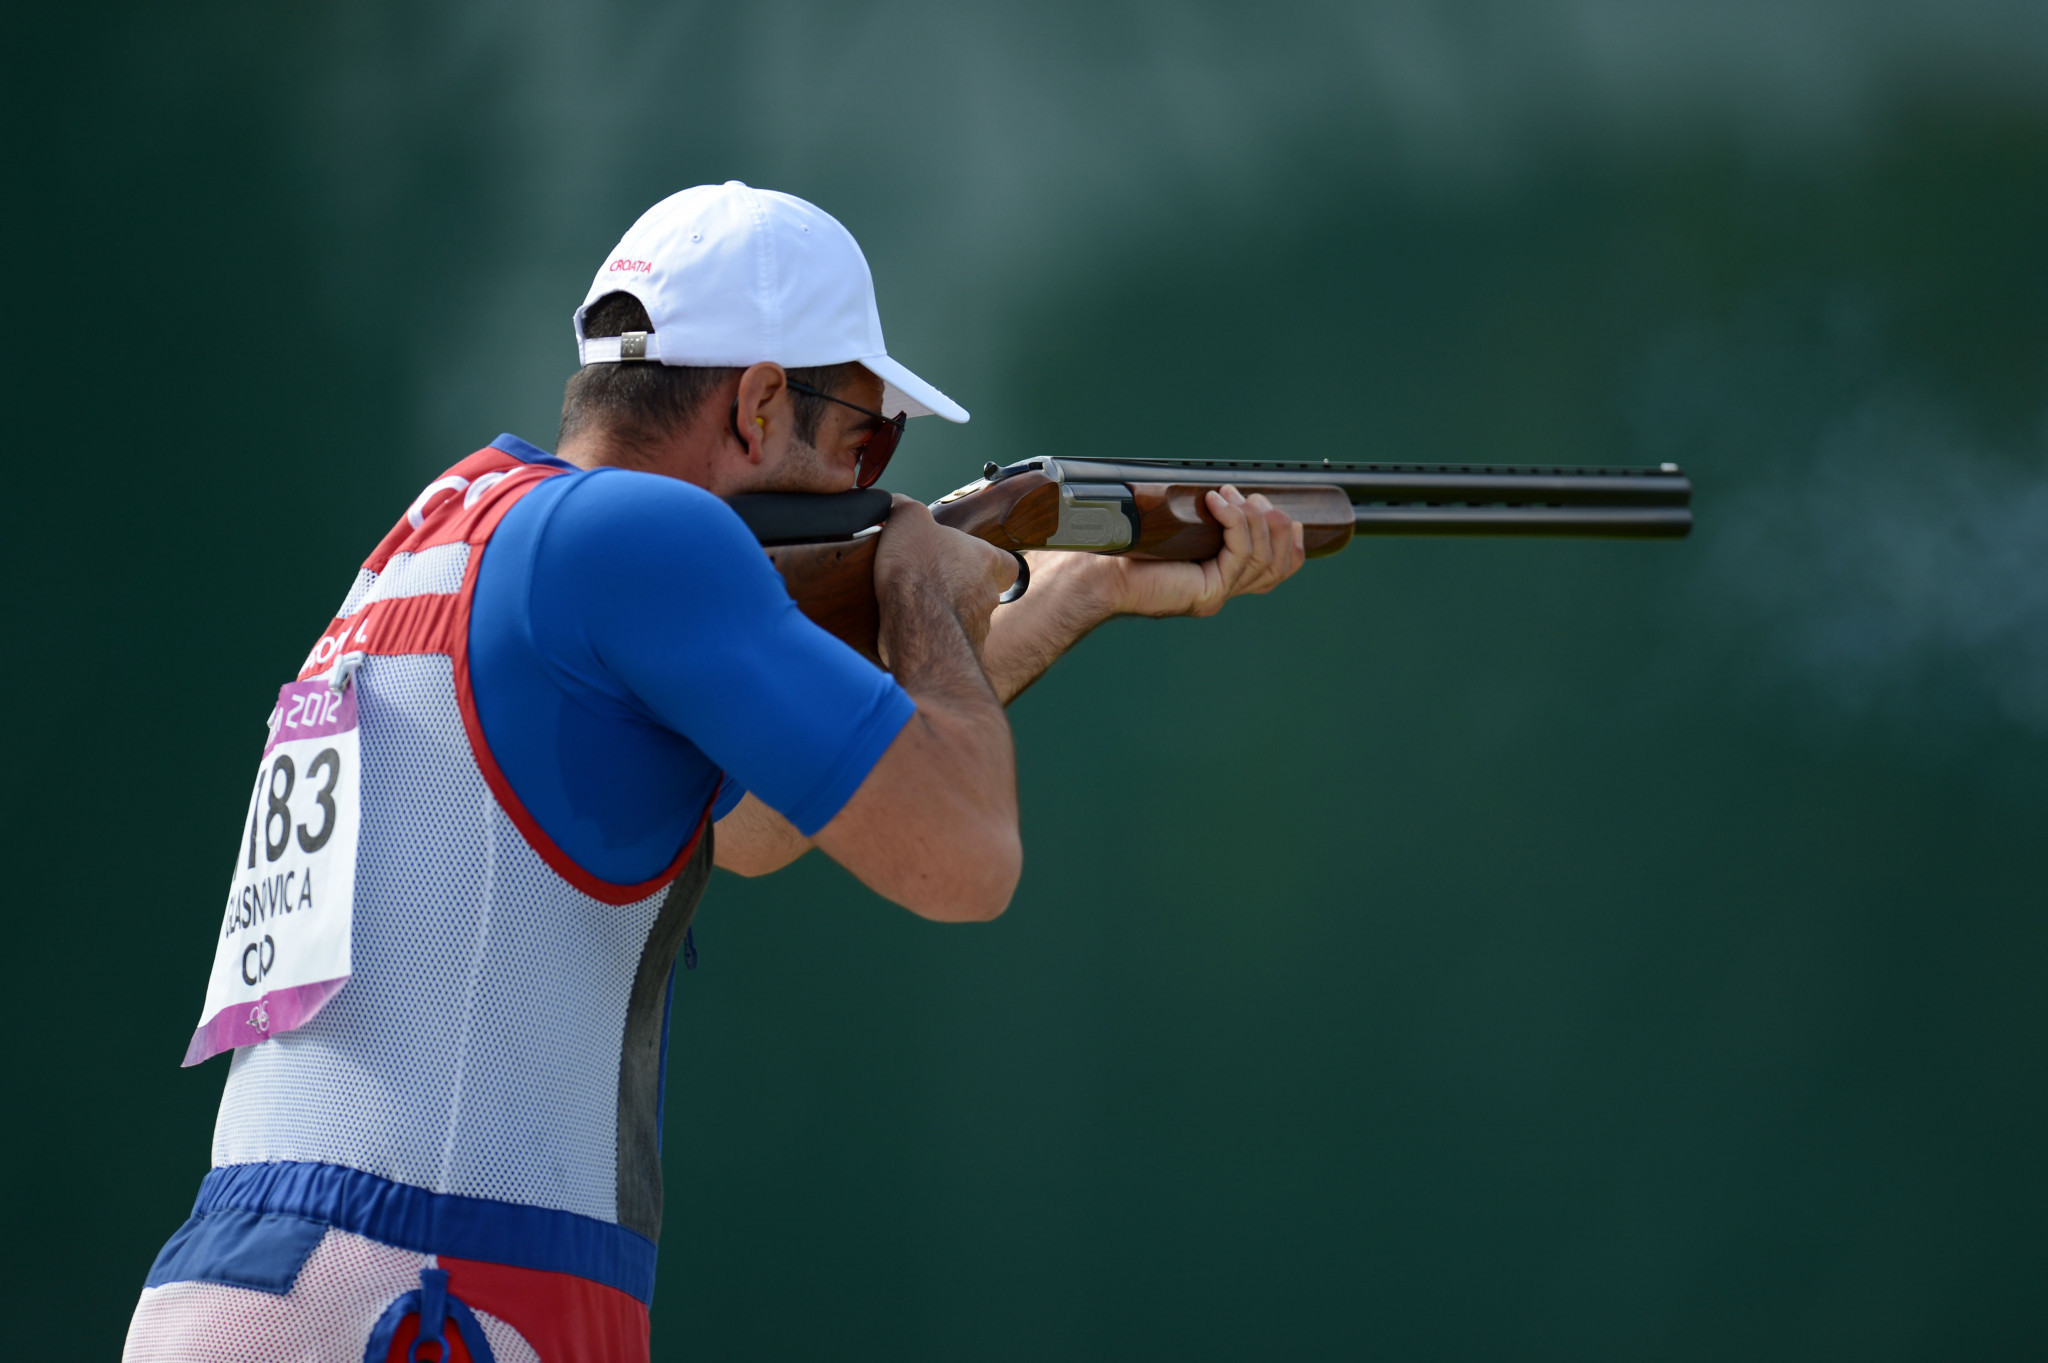 Anton Glasnović was the victor in the men's trap event ©Getty Images